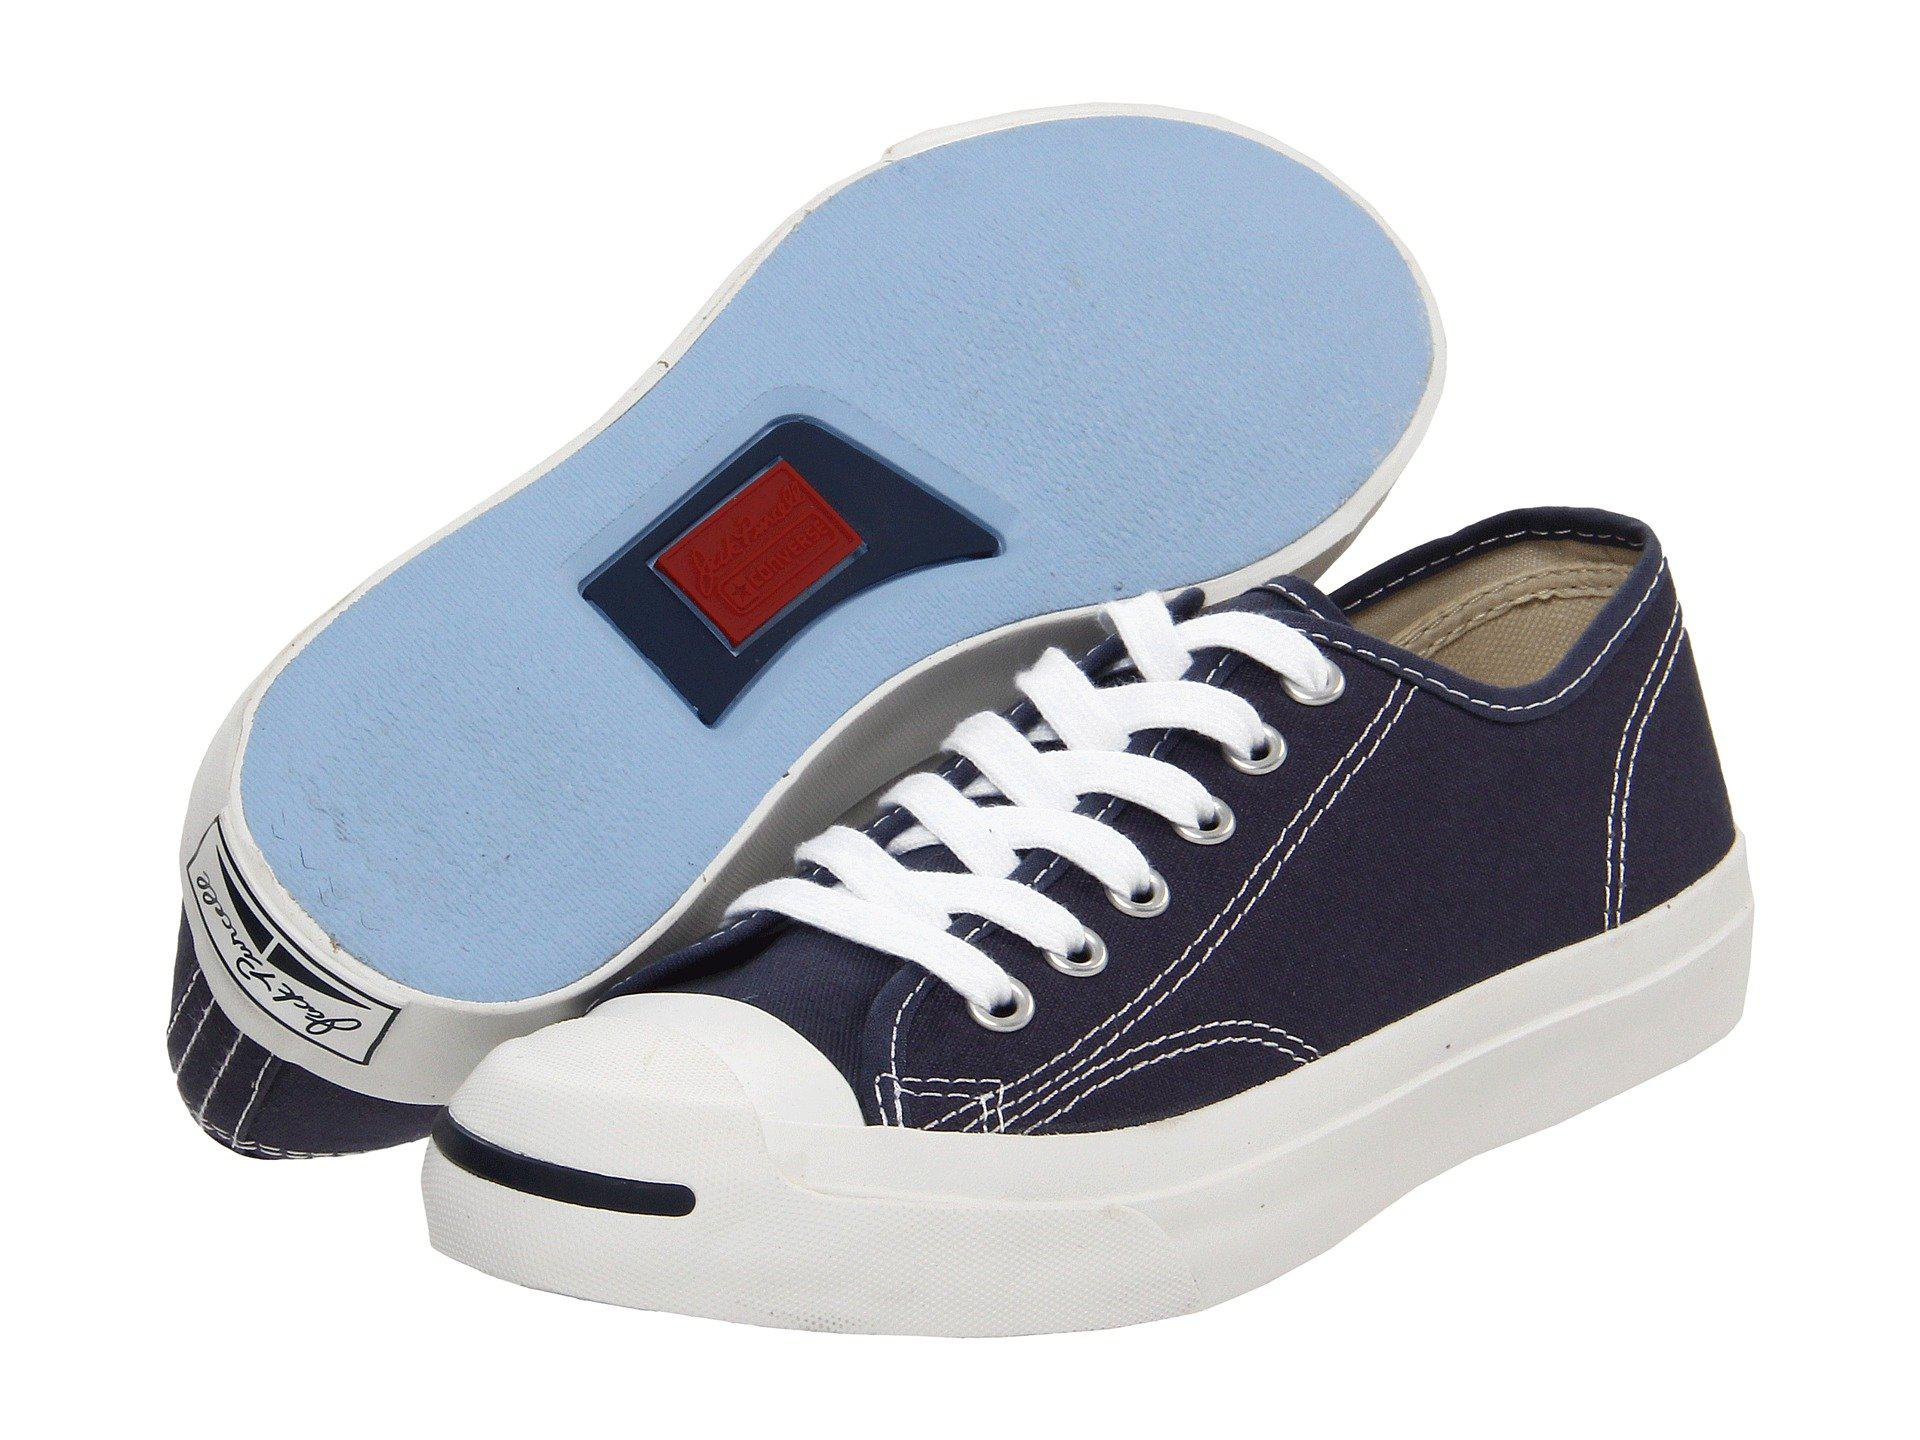 Lyst - Converse Jack Purcell® Cp Canvas Low Top in Blue 87c7b4400